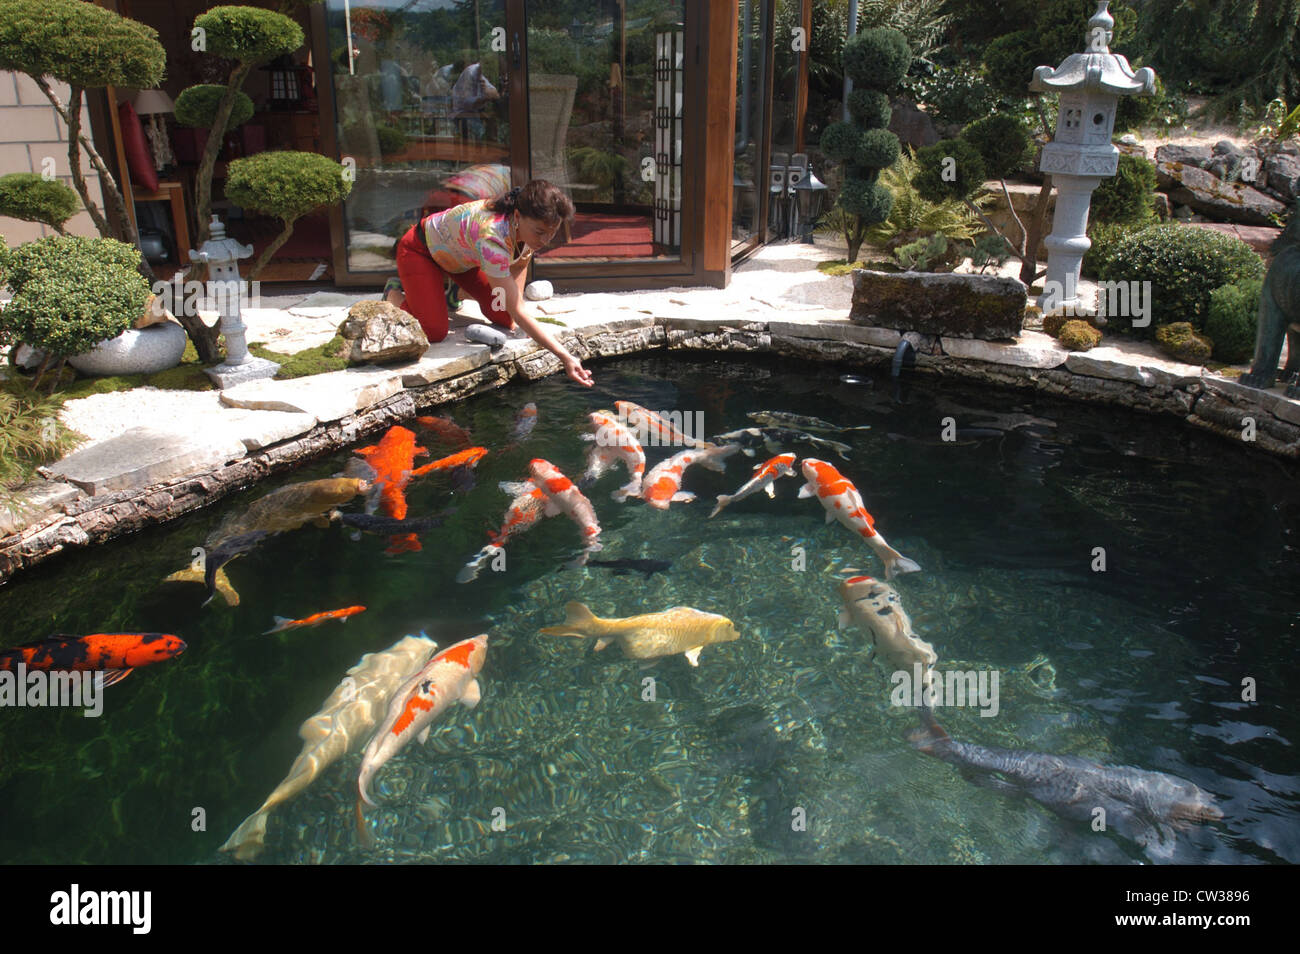 Koi pond in reigoldswil switzerland stock photo 49859522 for Koi pond and swimming pool